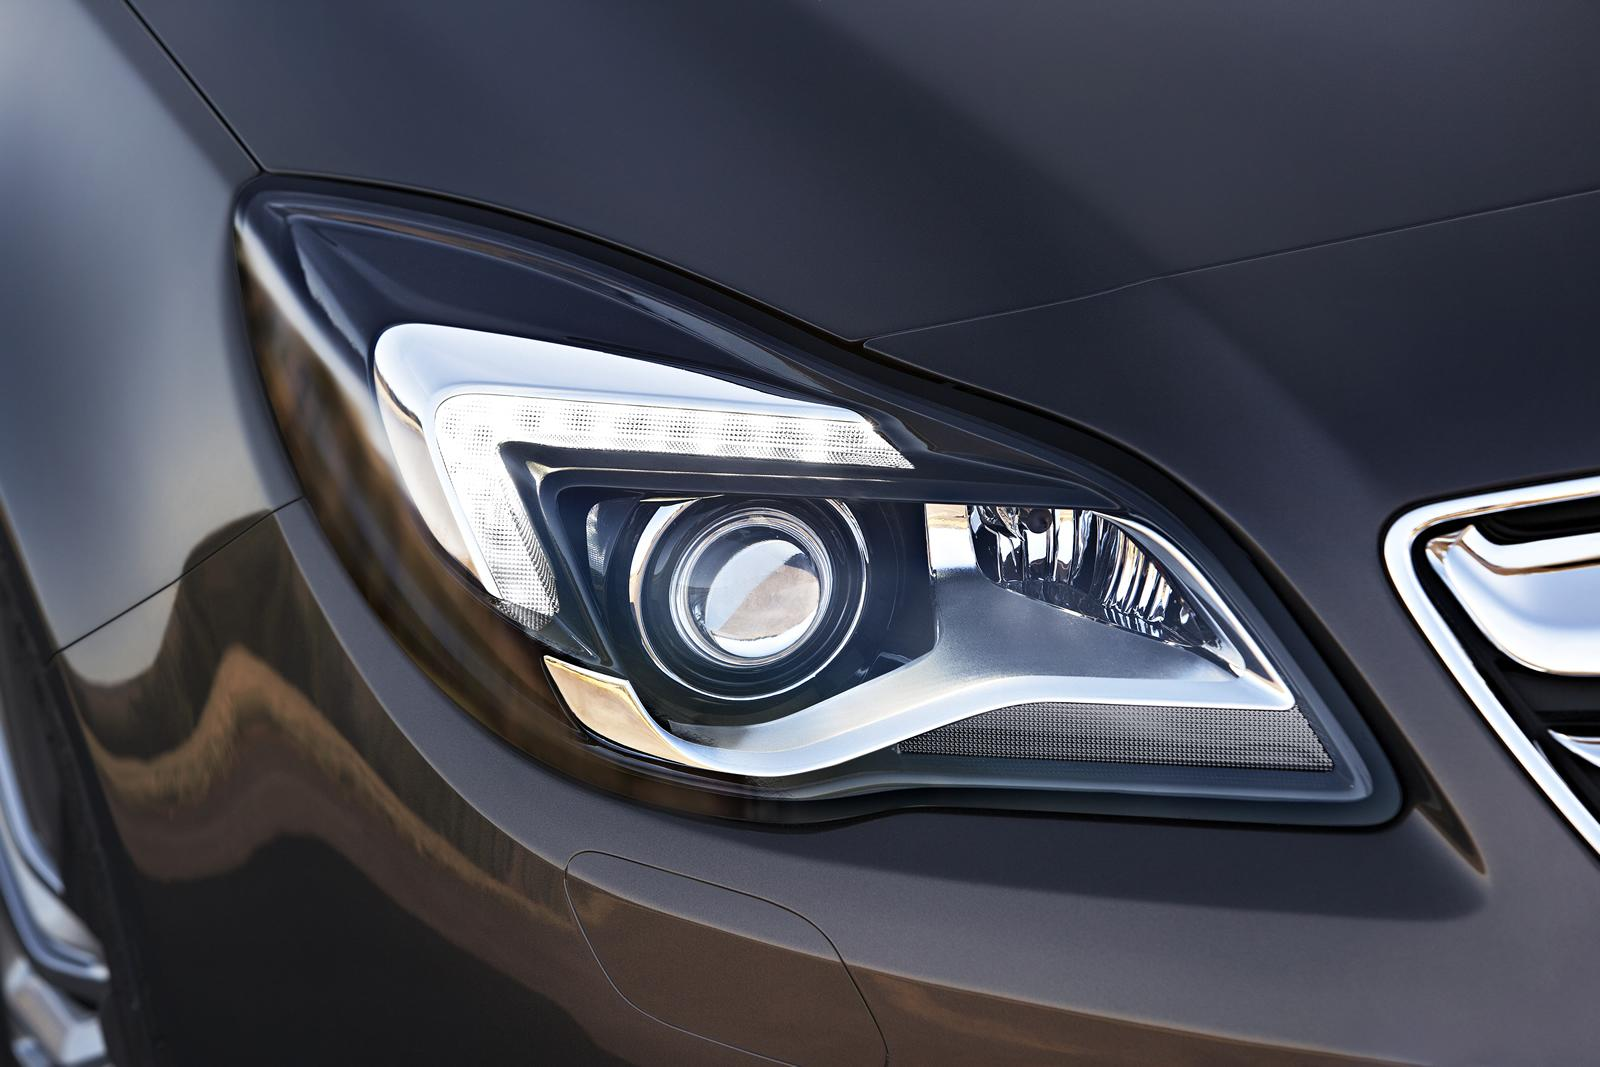 Opel / Vauxhall Insignia Facelift Full Details and Photos - autoevolution